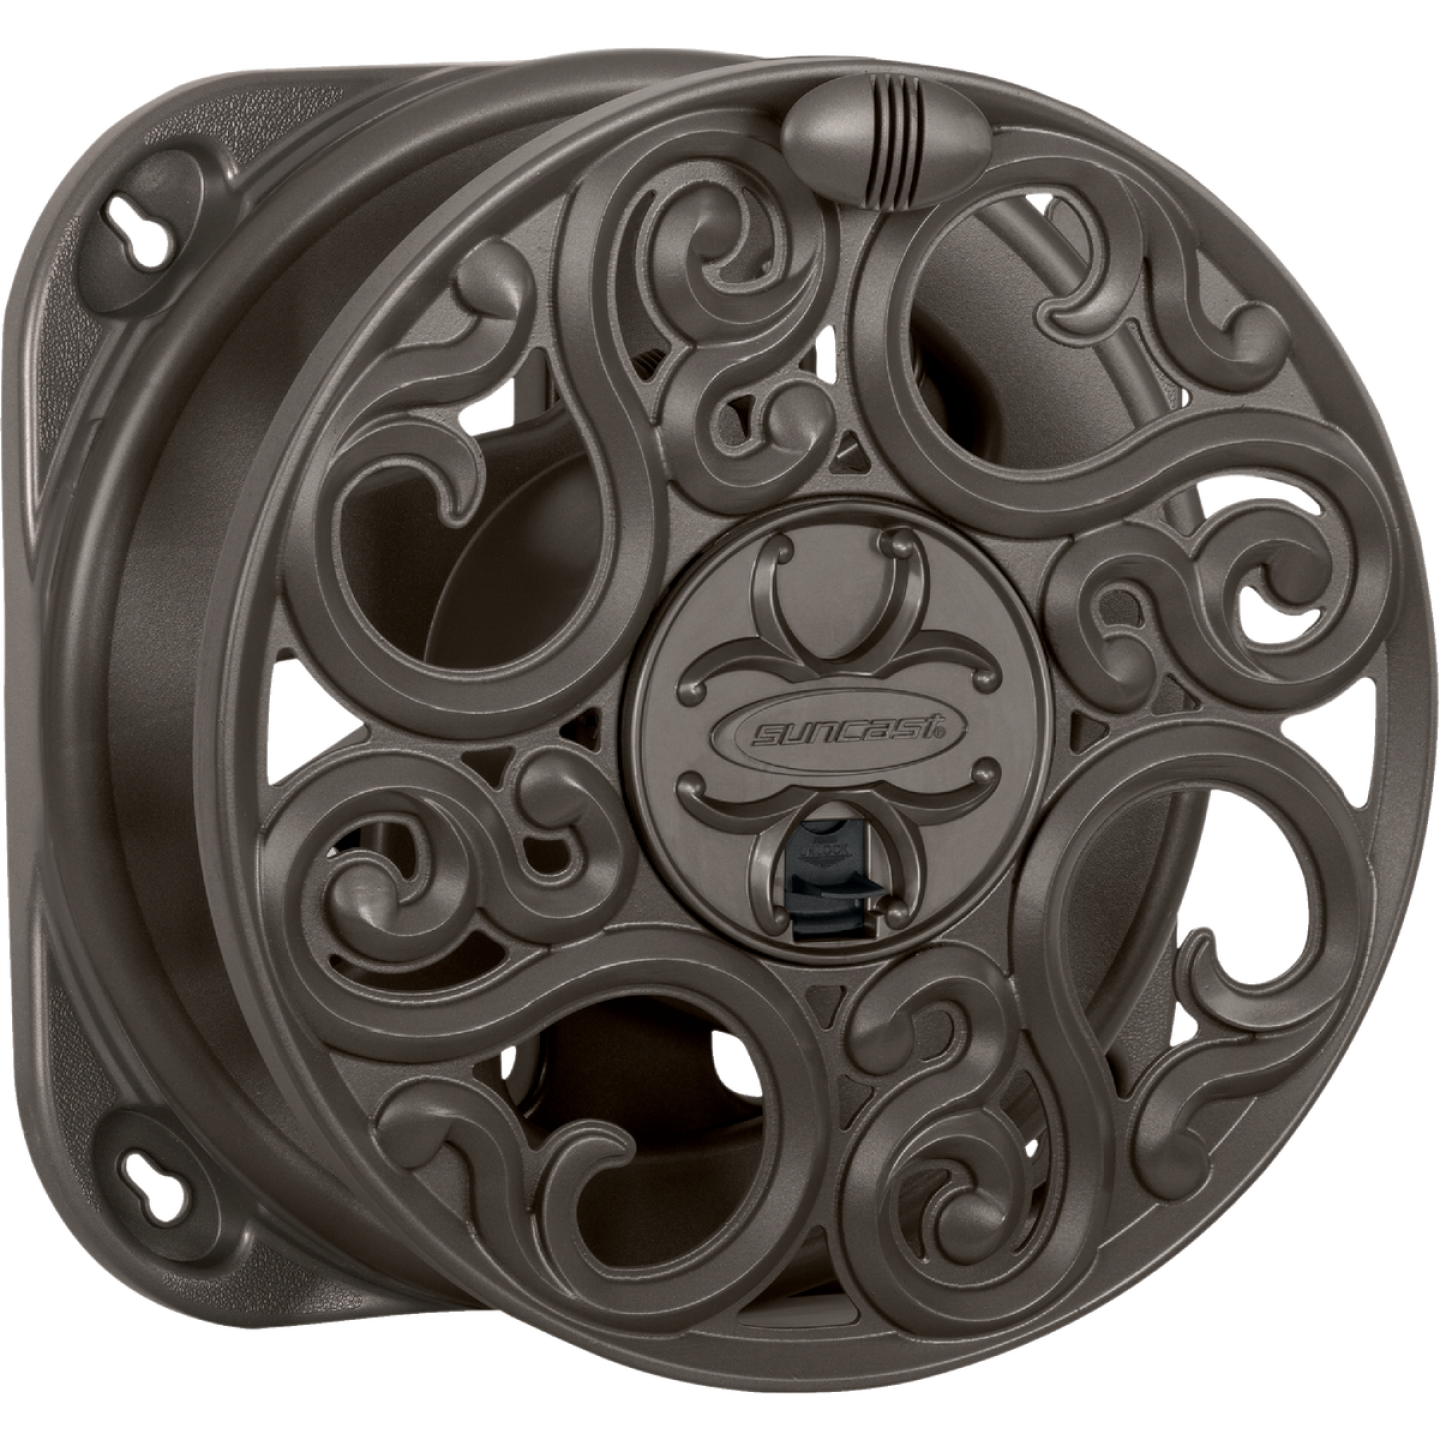 Suncast 60 Ft. x 5/8 In. Brown Resin Decorative Wall Mount Hose Reel Image 1